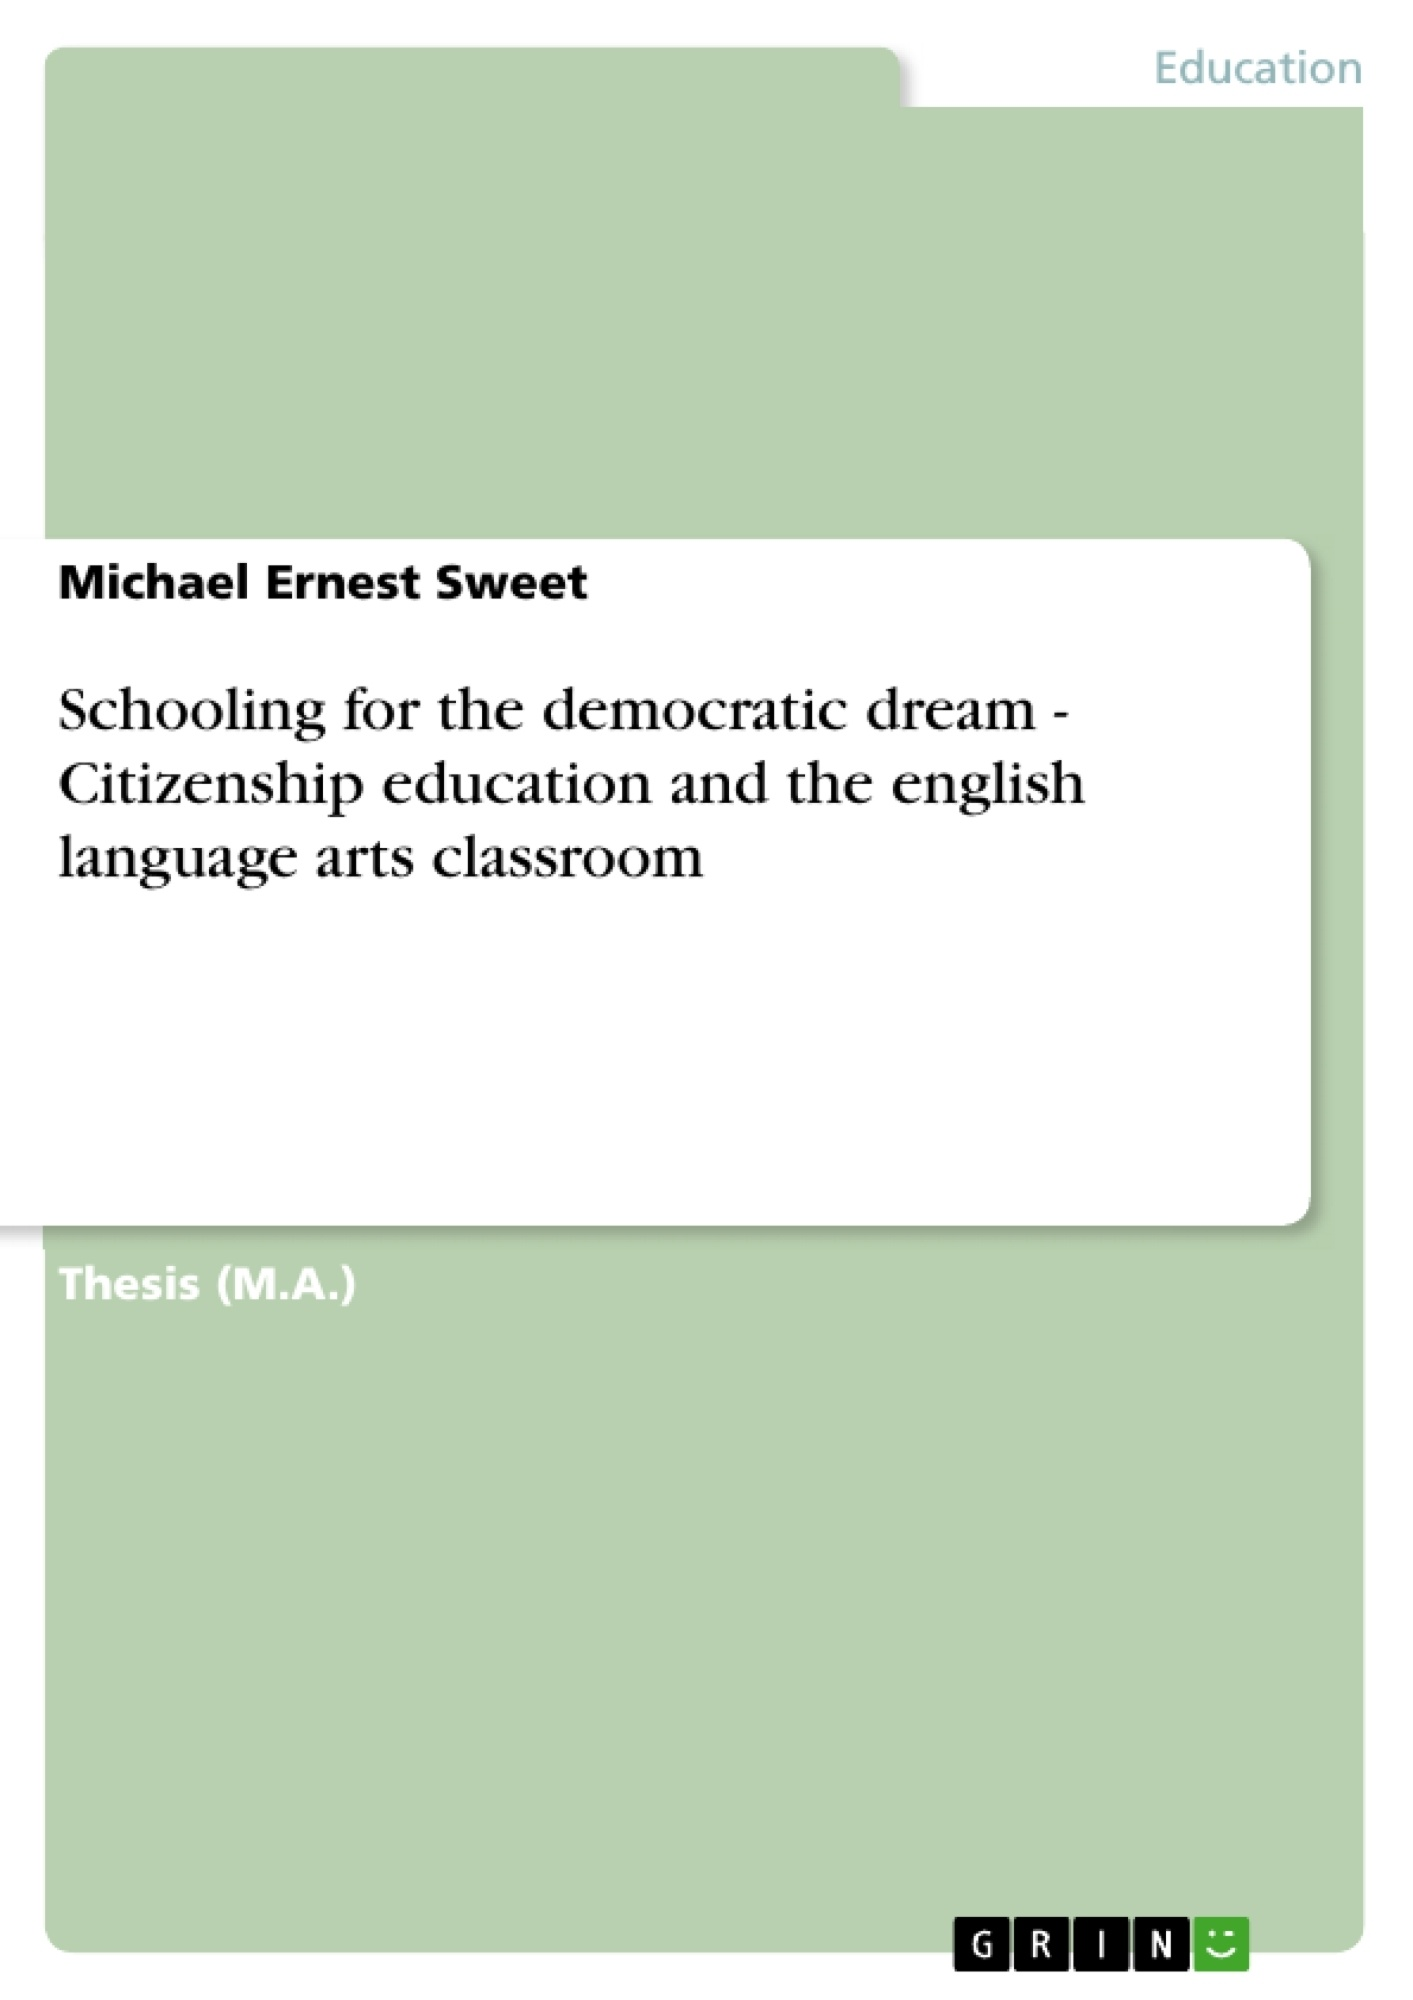 essays on citizenship education Moral education and character education:  in citizenship education  between the fields of moral education and character education further complicates attempts.